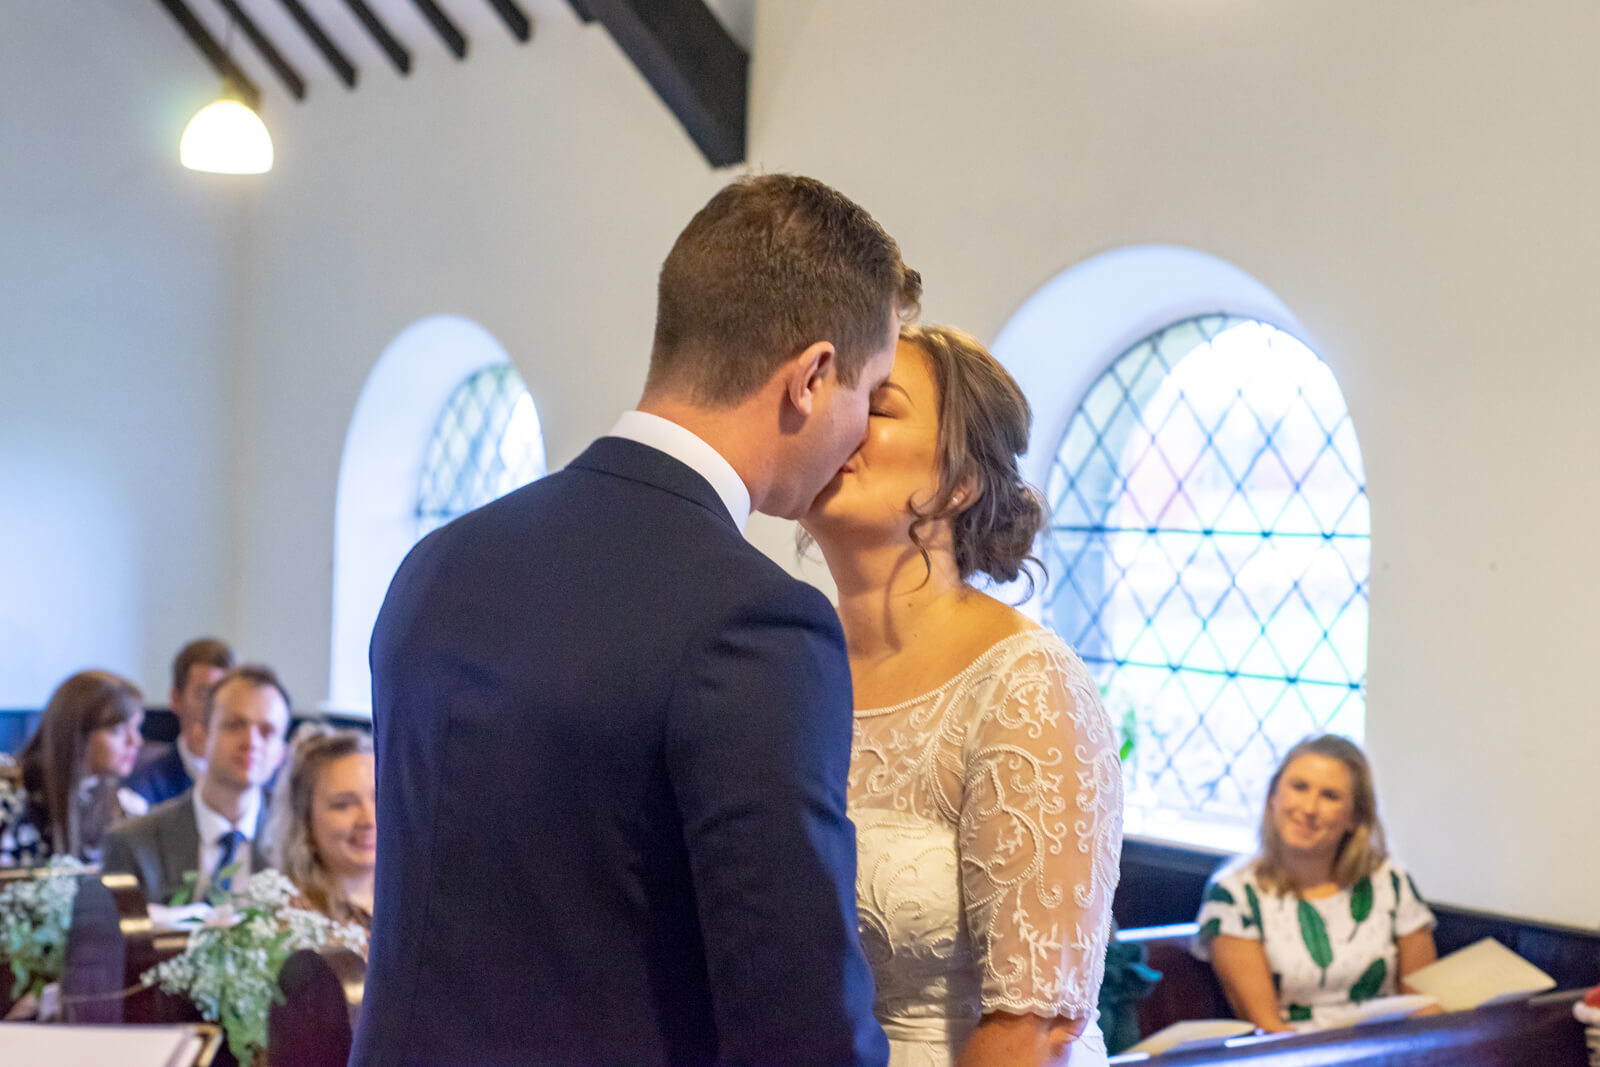 Bride and groom kiss in their small chapel wedding